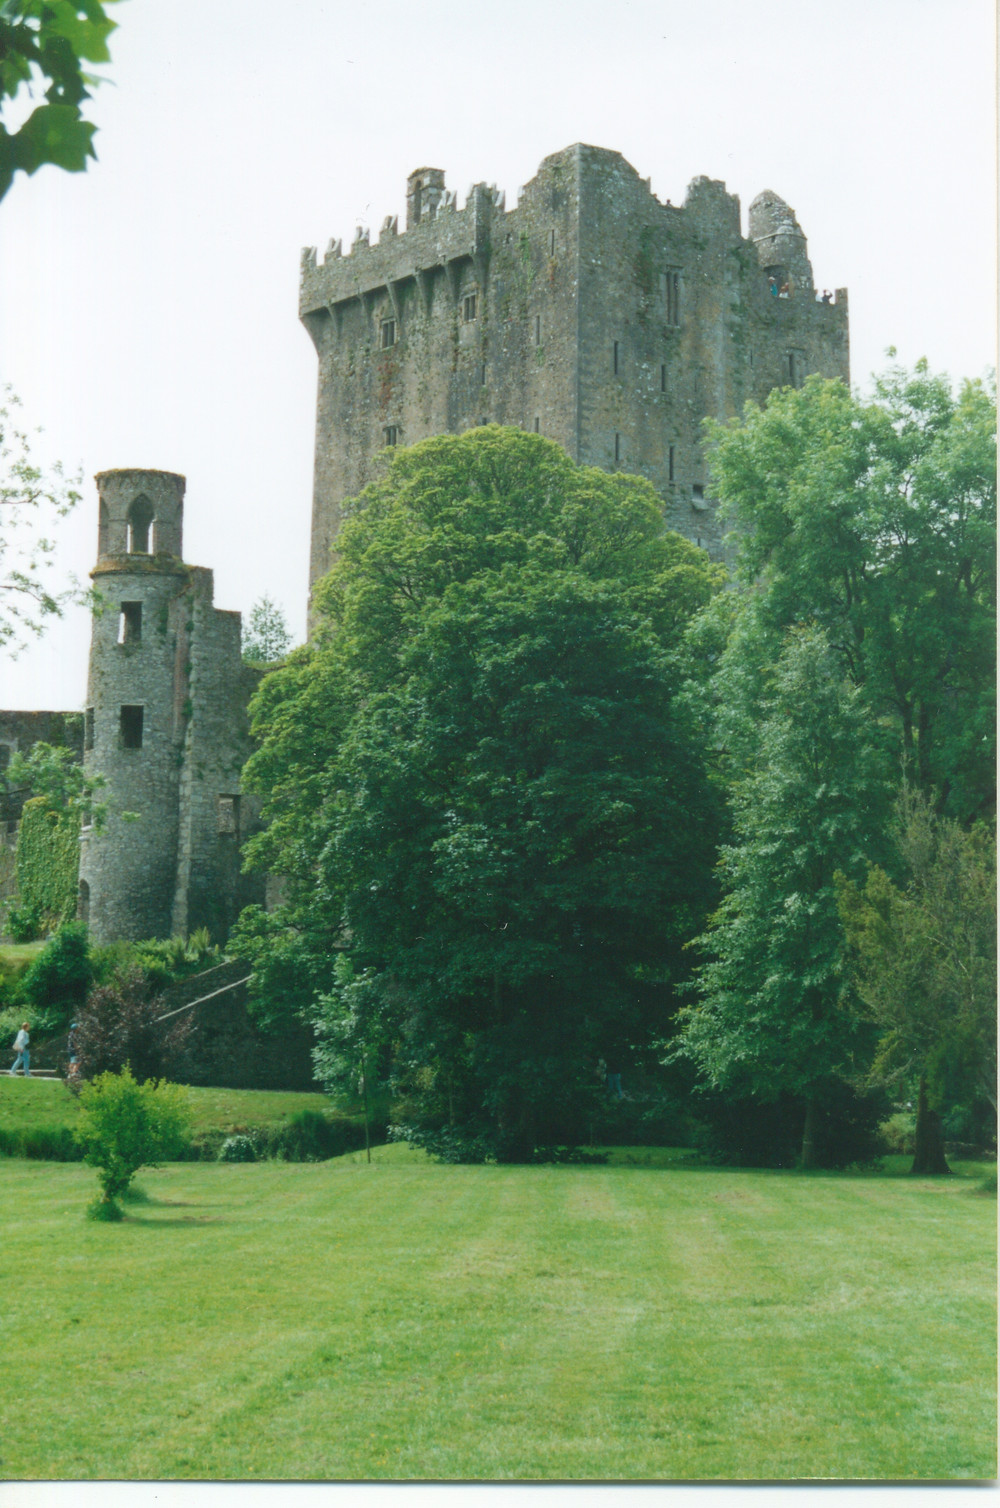 Blarney Castle, Ireland. Photo by John Morgan